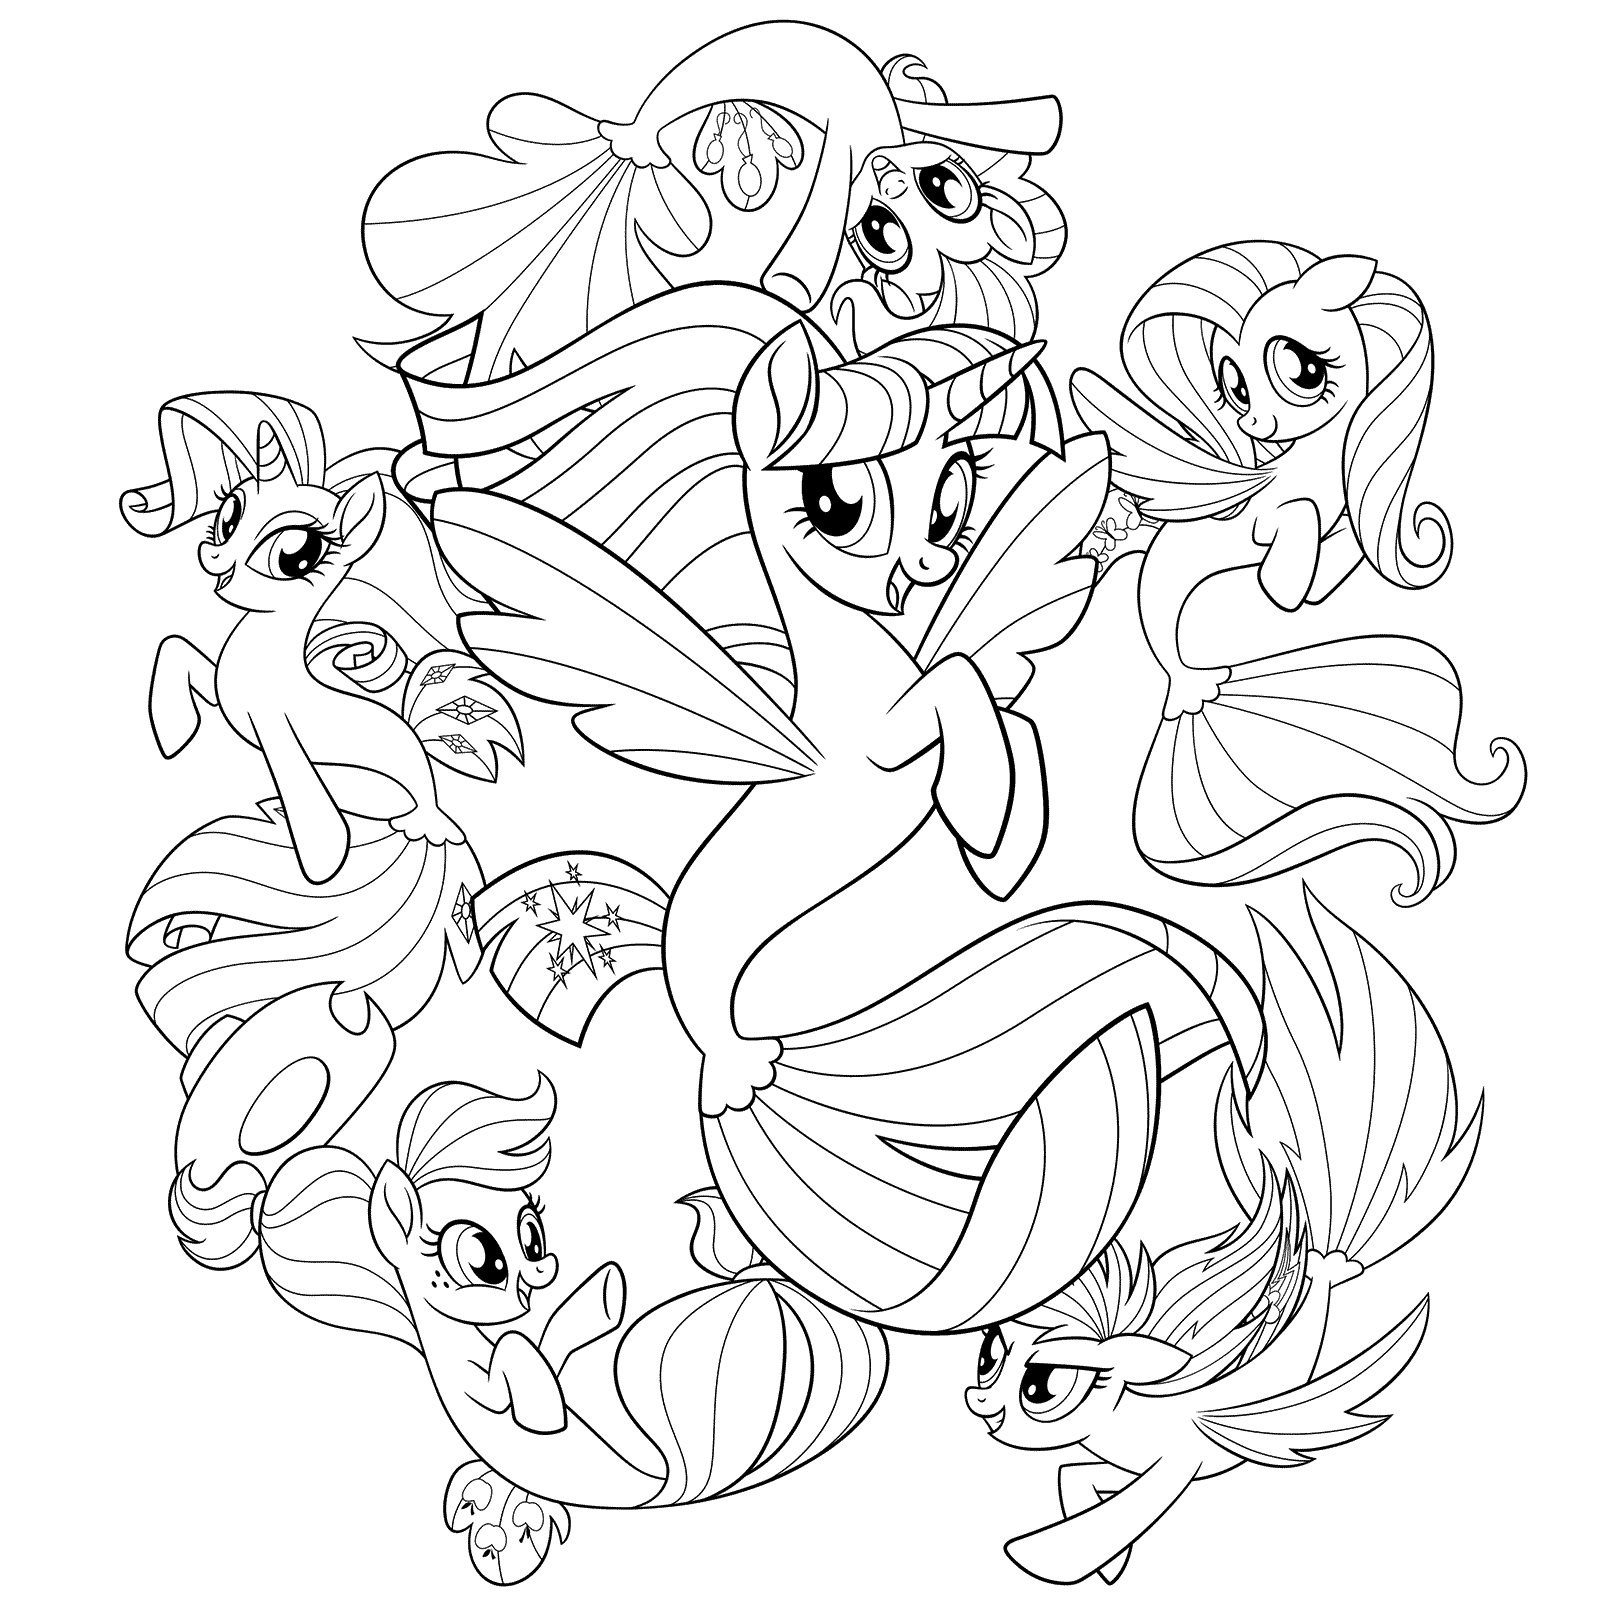 My Little Pony Friendship Is Magic Coloring Pages Best Coloring Pages For Kids My Little Pony Coloring My Little Pony Rarity My Little Pony Drawing